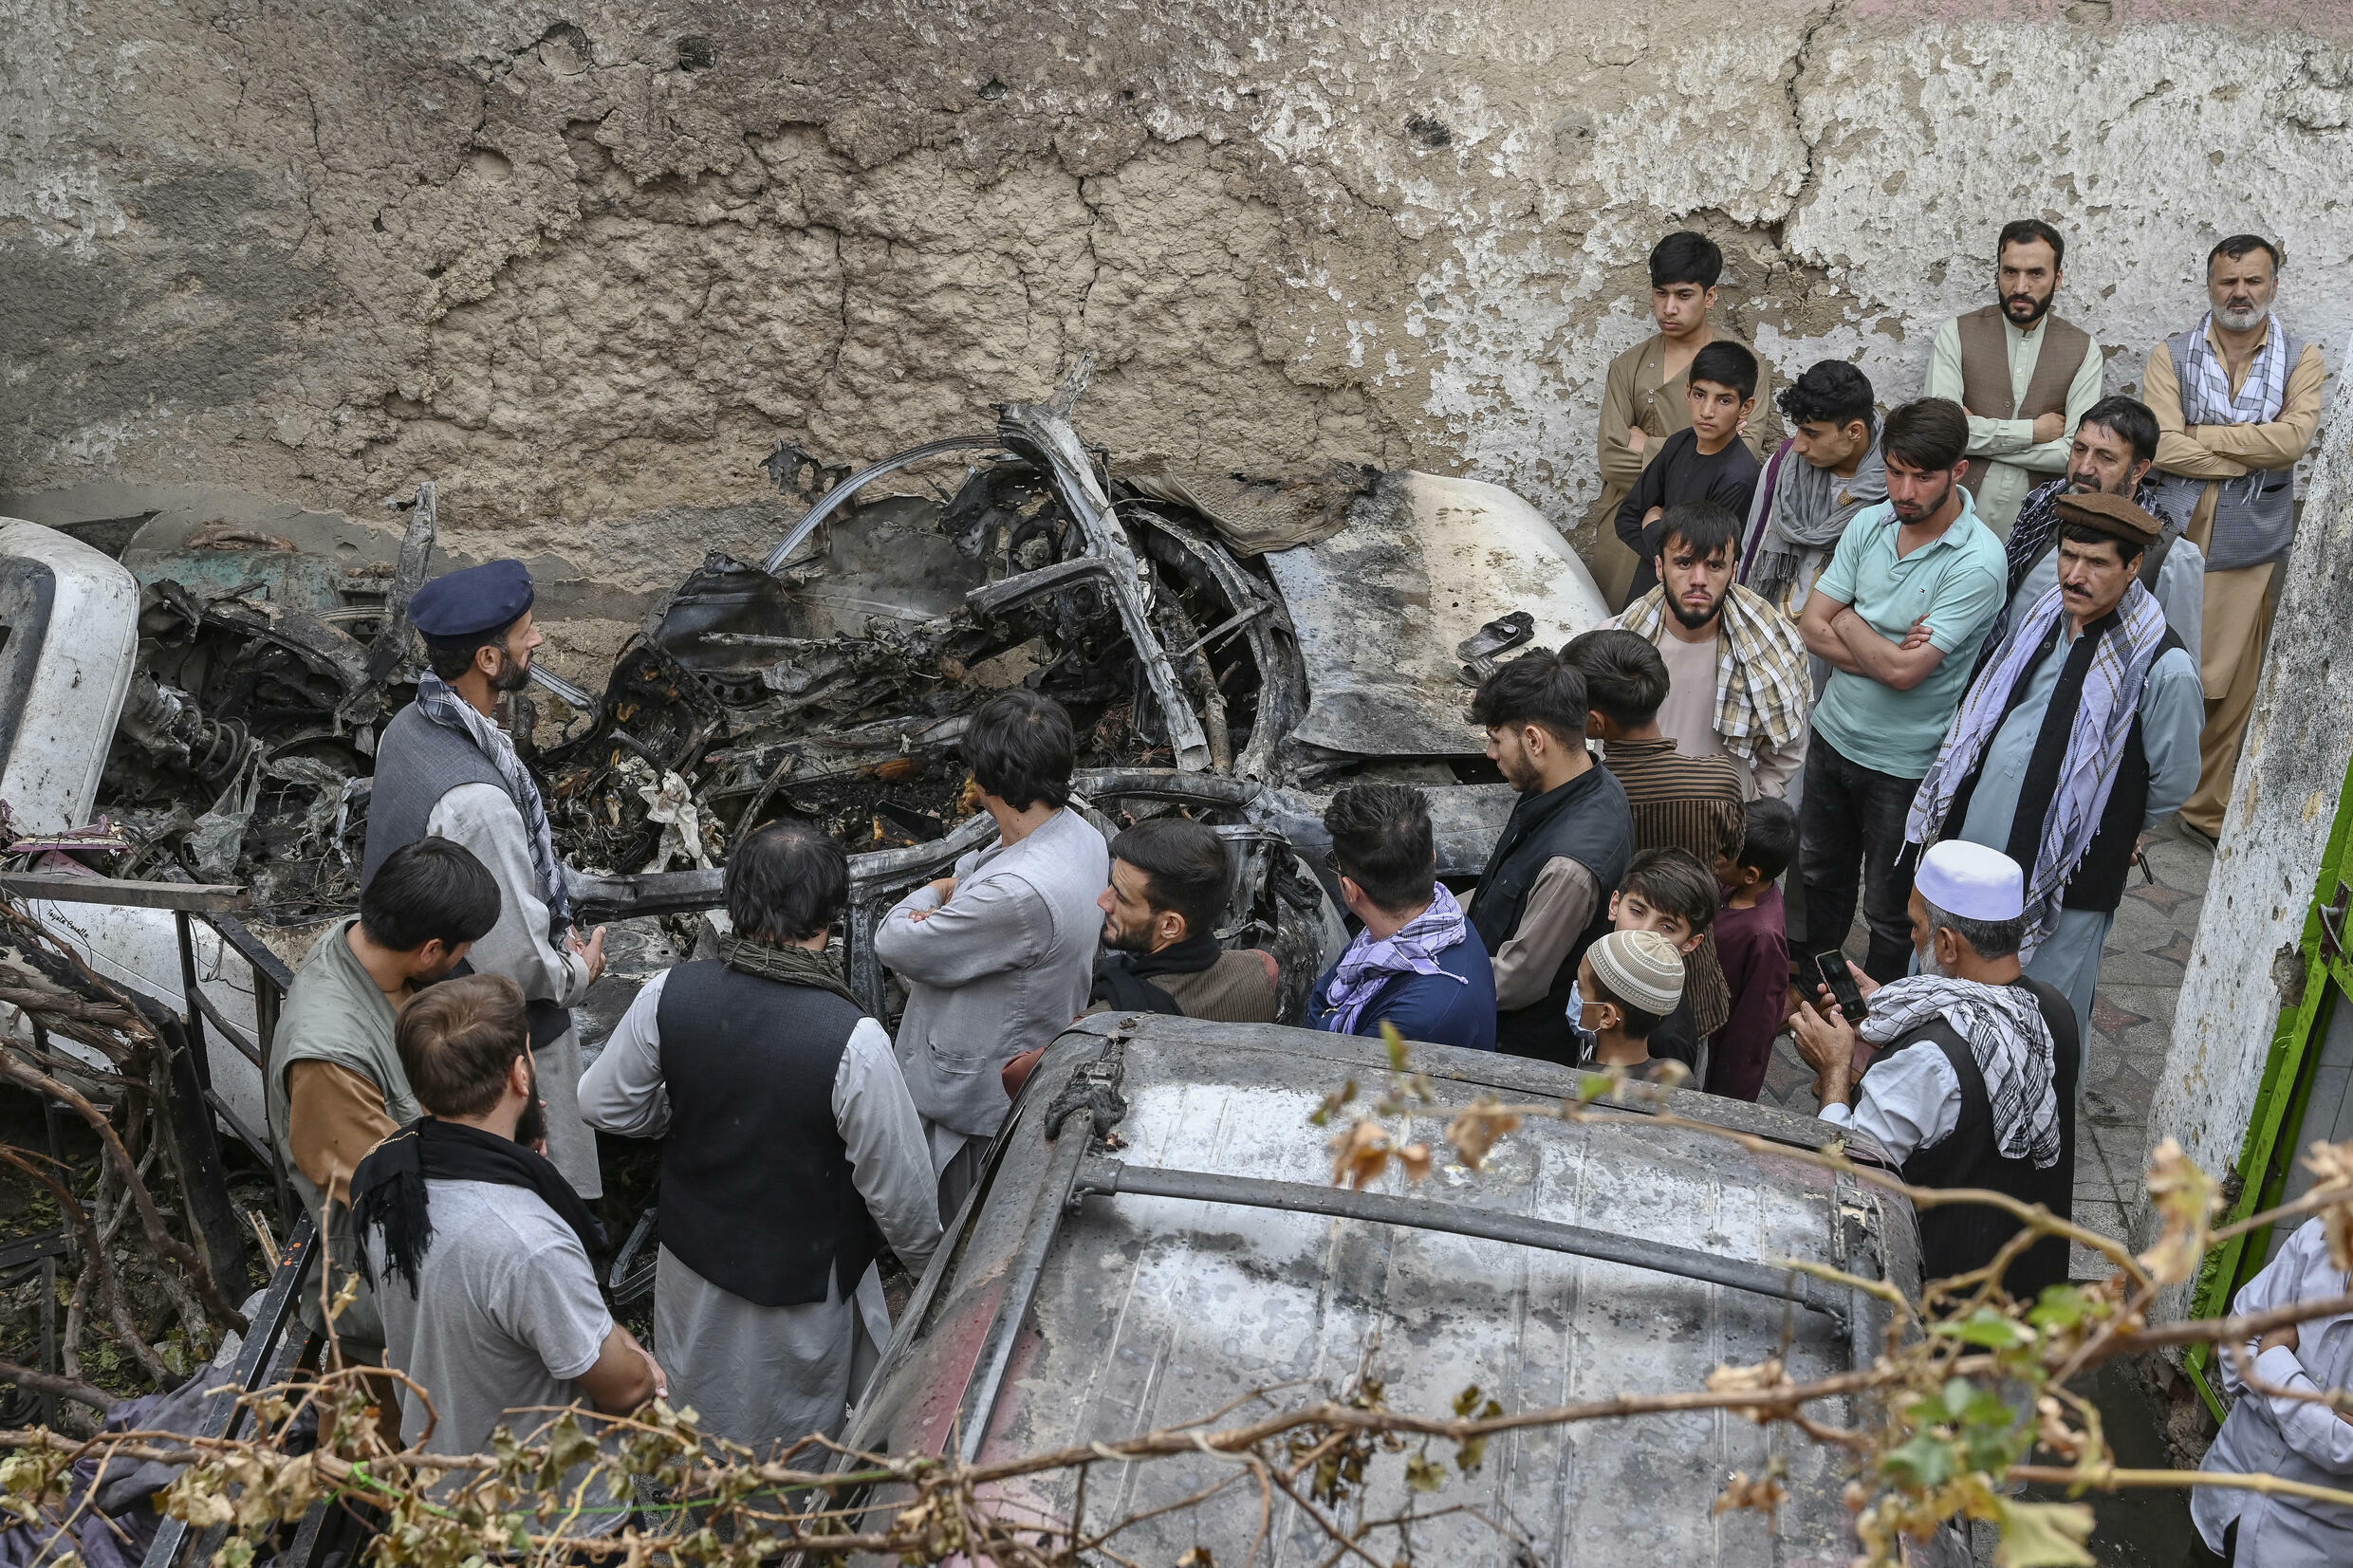 Afghan relatives gather on August 30, 2021 next to a damaged vehicle after a US drone strike that has come under scrutiny